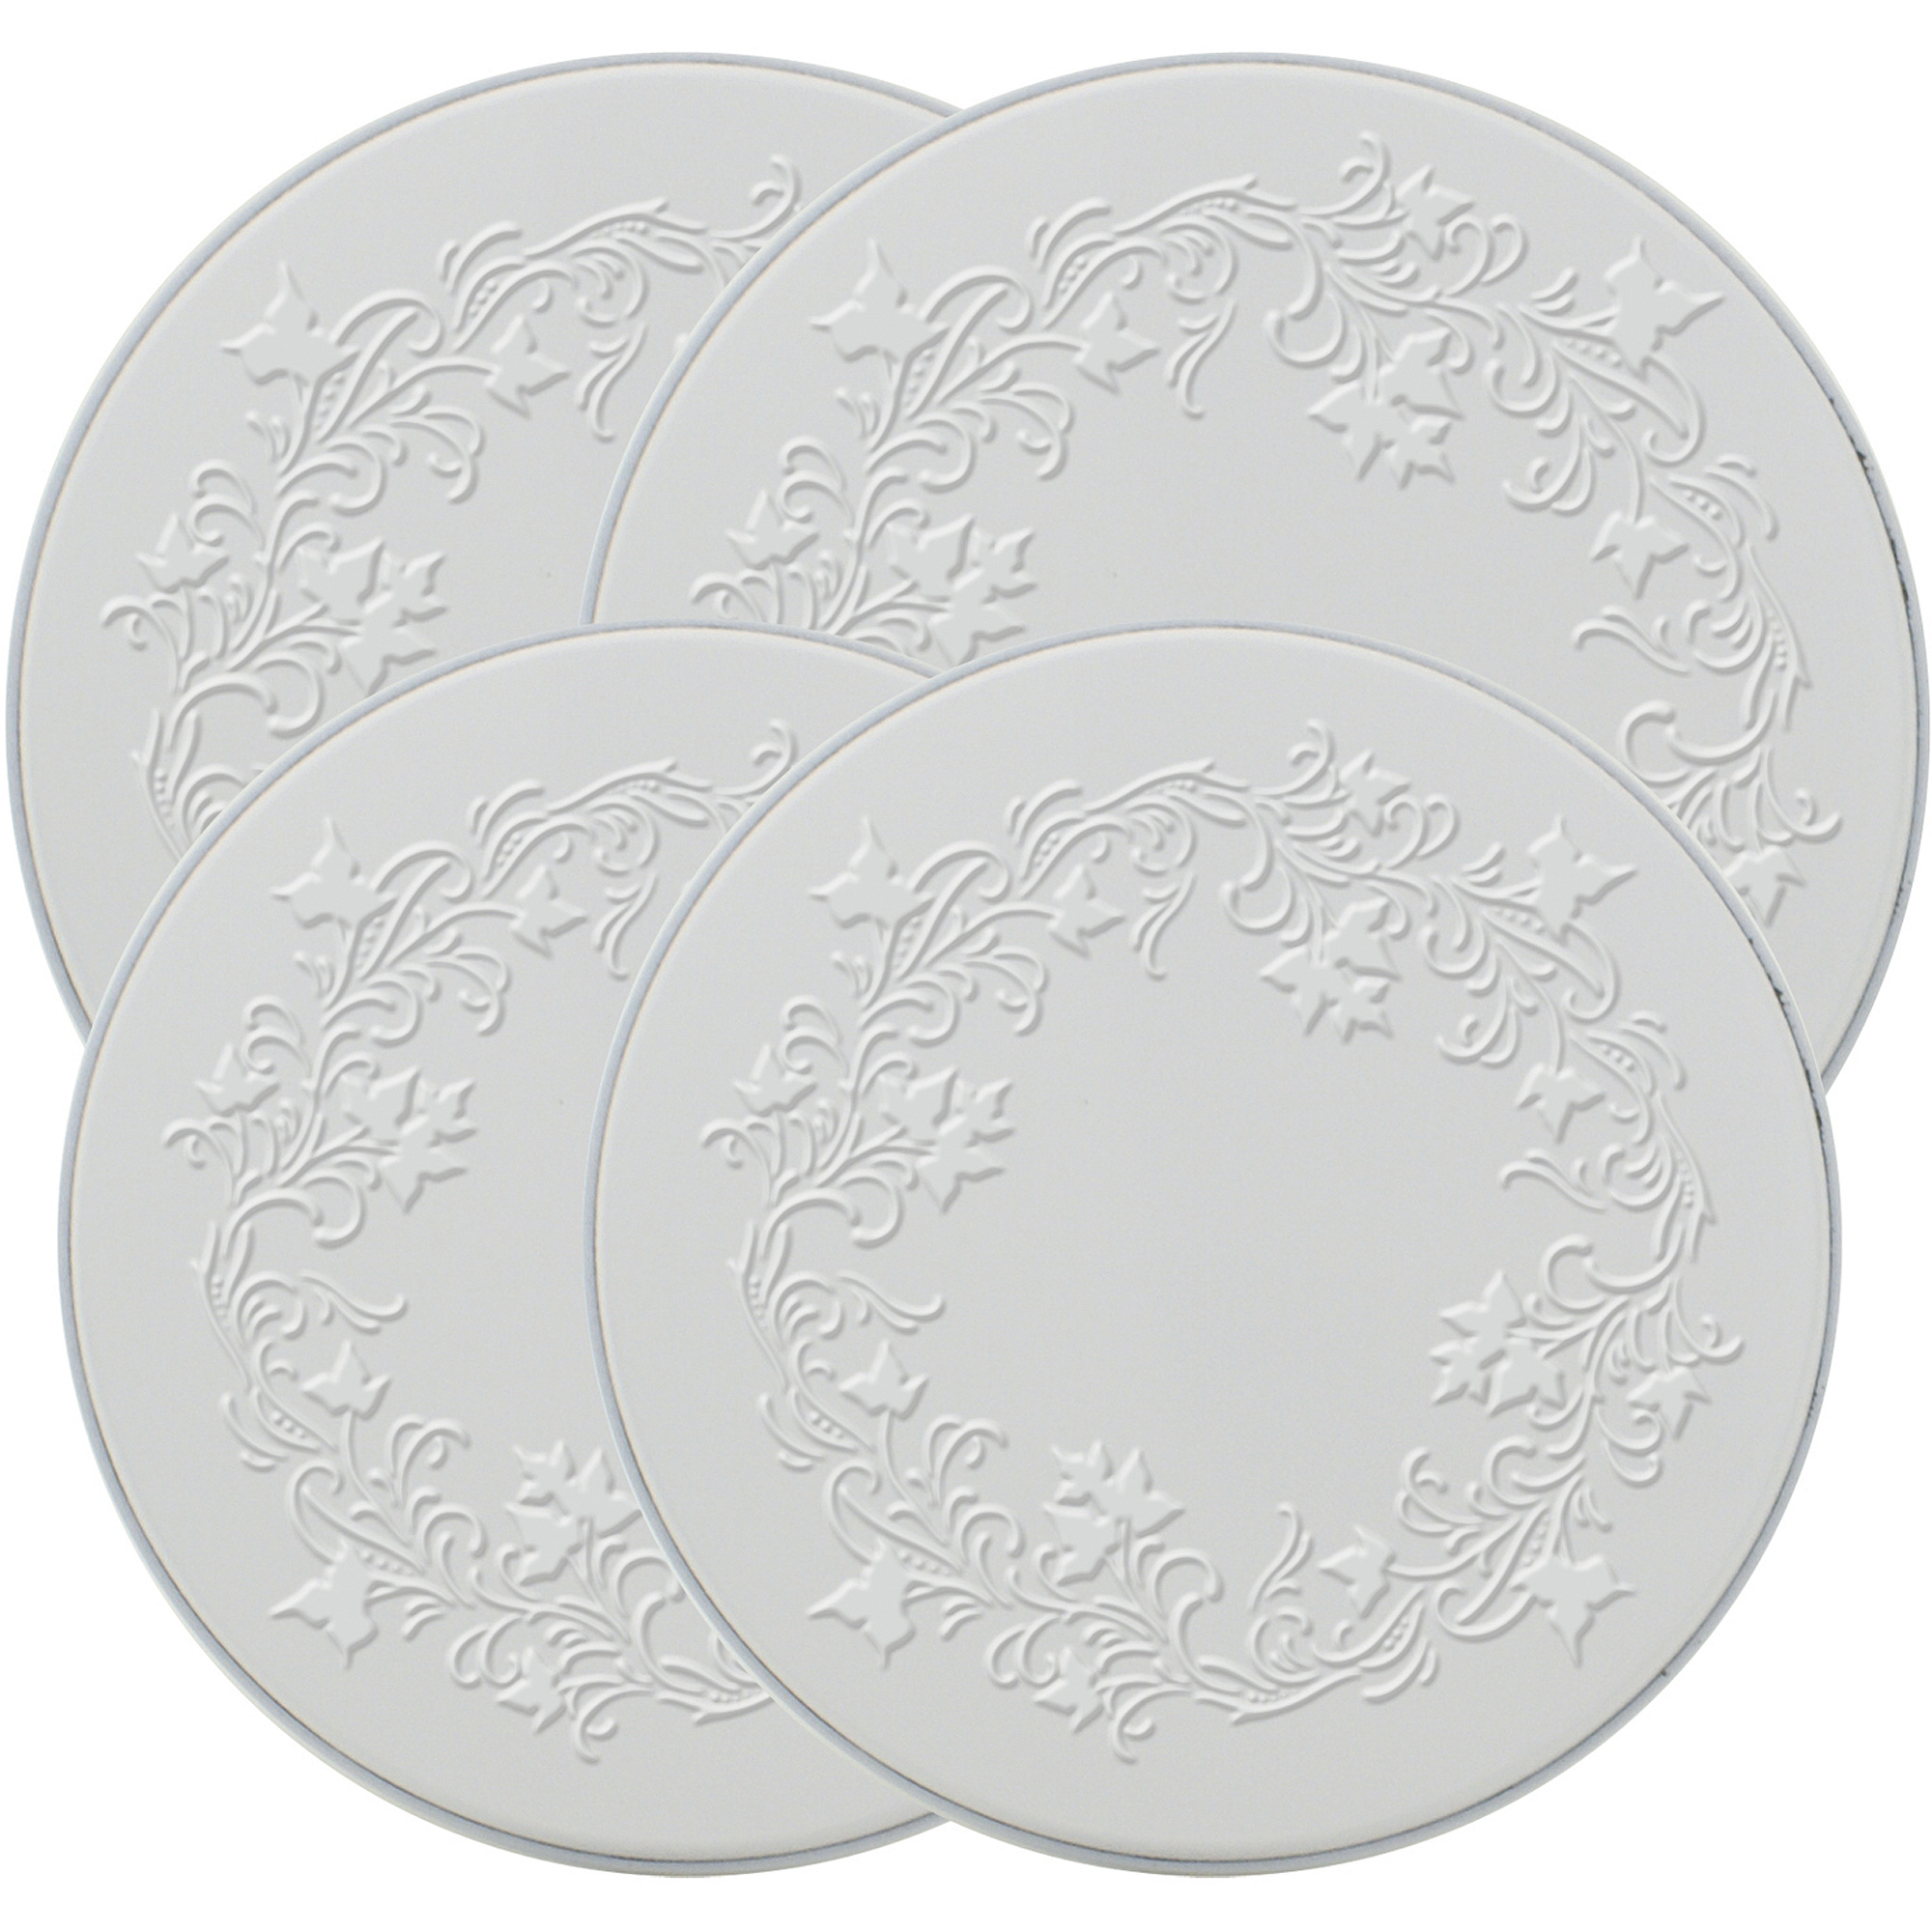 "Range Kleen 4-Piece Burner Kover Set, Round, Decorative ""Embossed Ivy"""